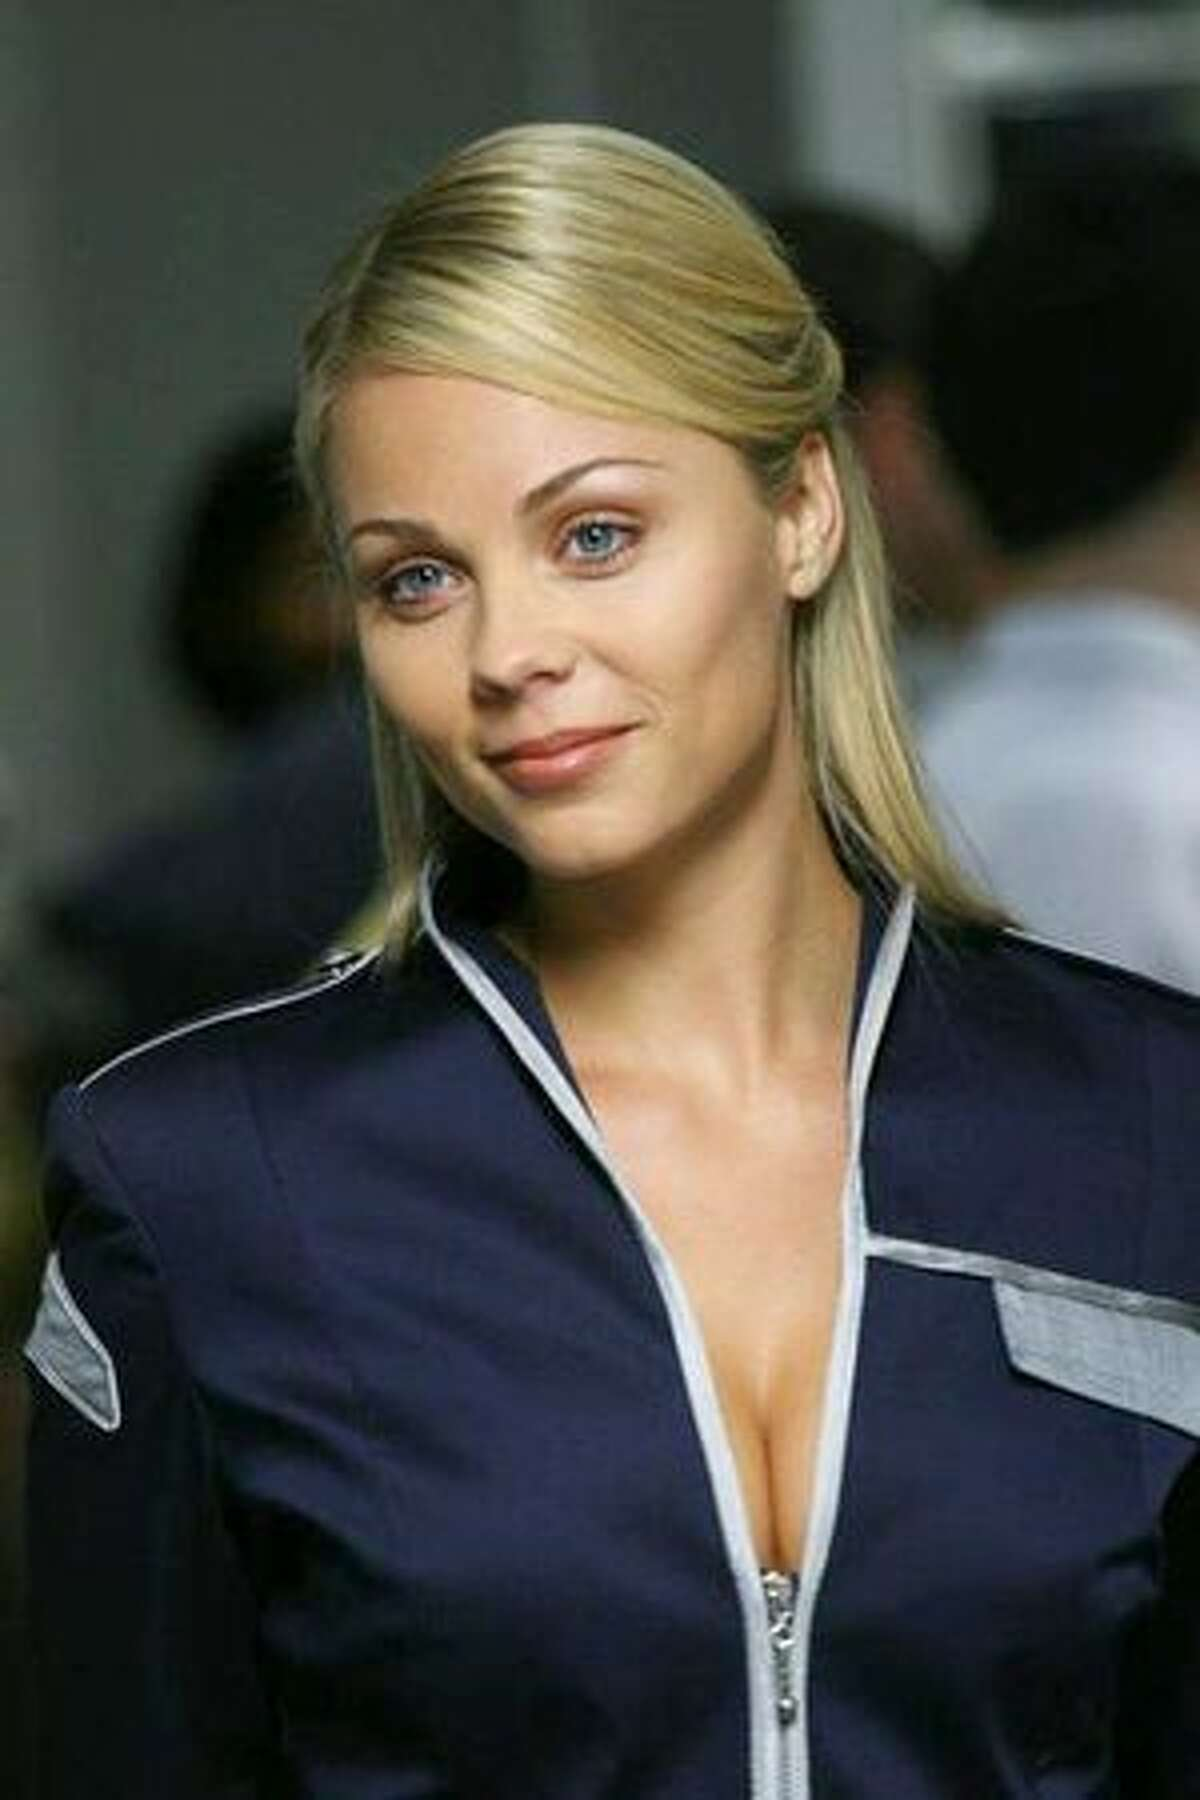 No. 53: Canadian actress Laura Vandervoort (publicity photo from the TV series